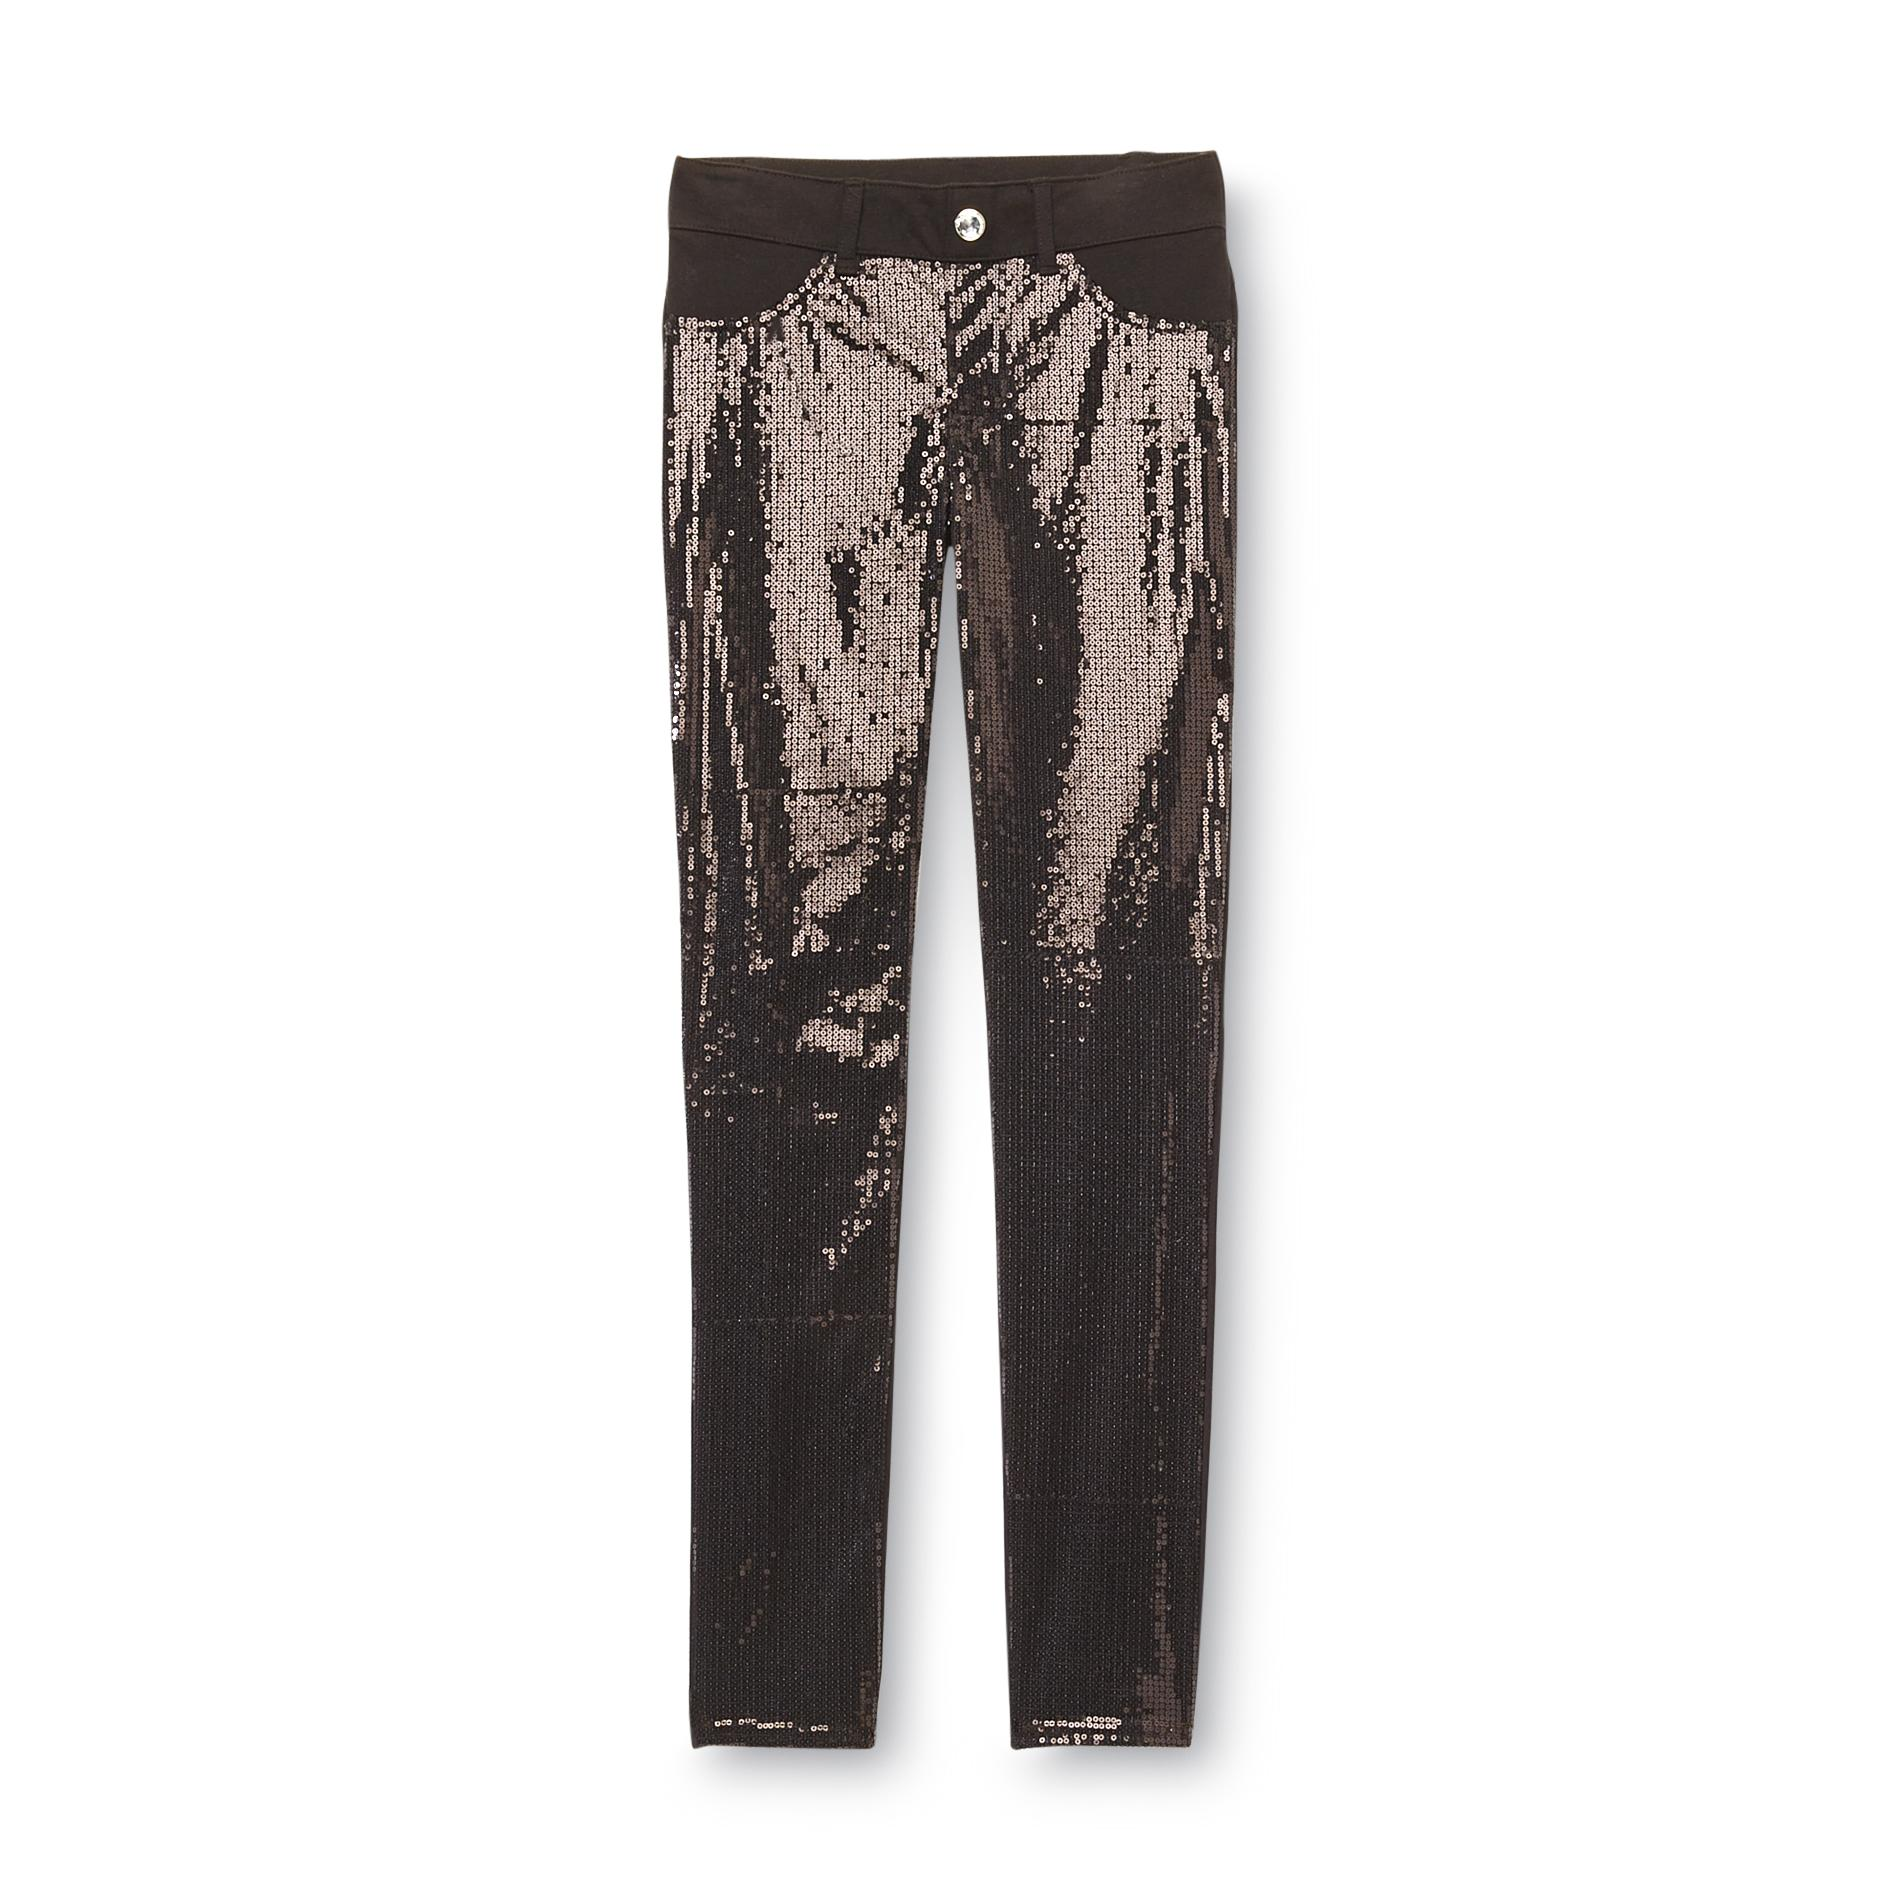 Piper Girl's Knit Jeggings - Sequined at Kmart.com